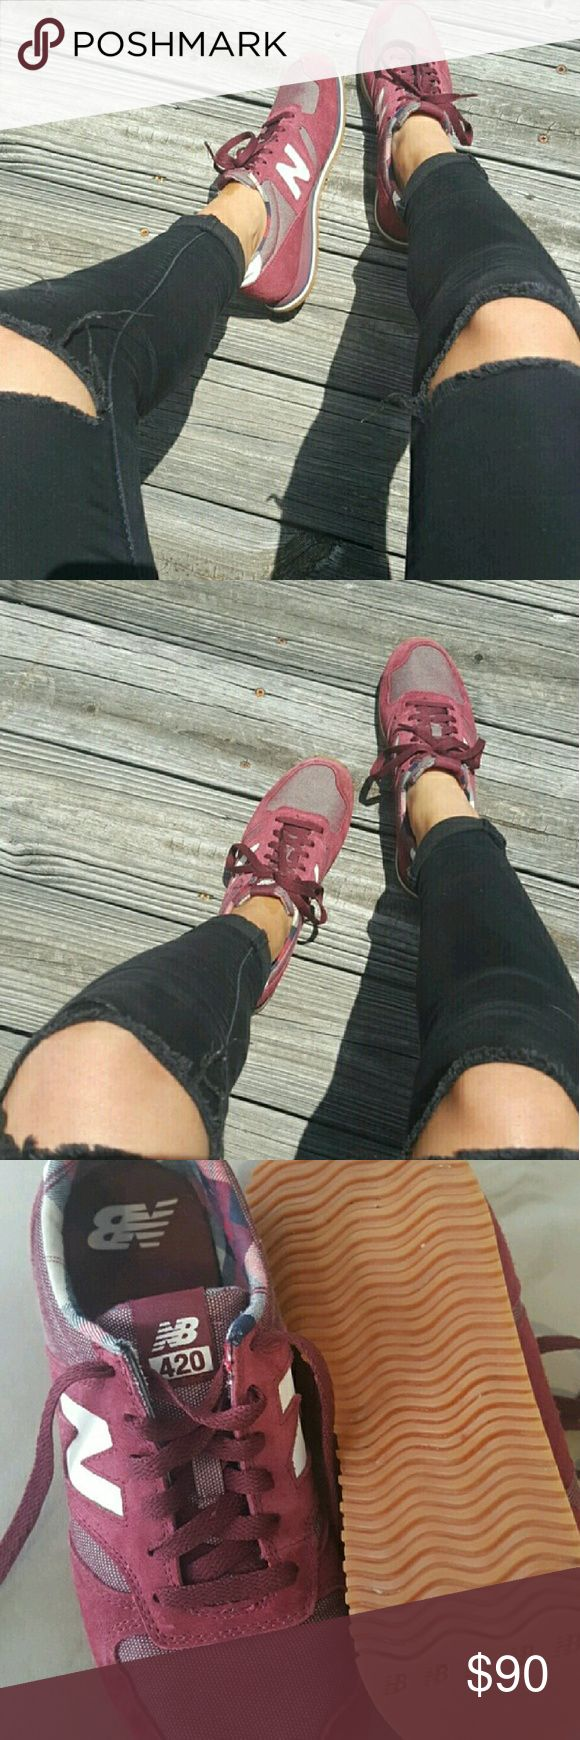 Burgundy New Balances I bought these as a limited edition pair from asos. They are super rare and one of a kind. They are the new balance 420 burgundy with navy blue accents. Pair with an all black outfit and a burgundy lipstick. In great condition. New Balance Shoes Sneakers